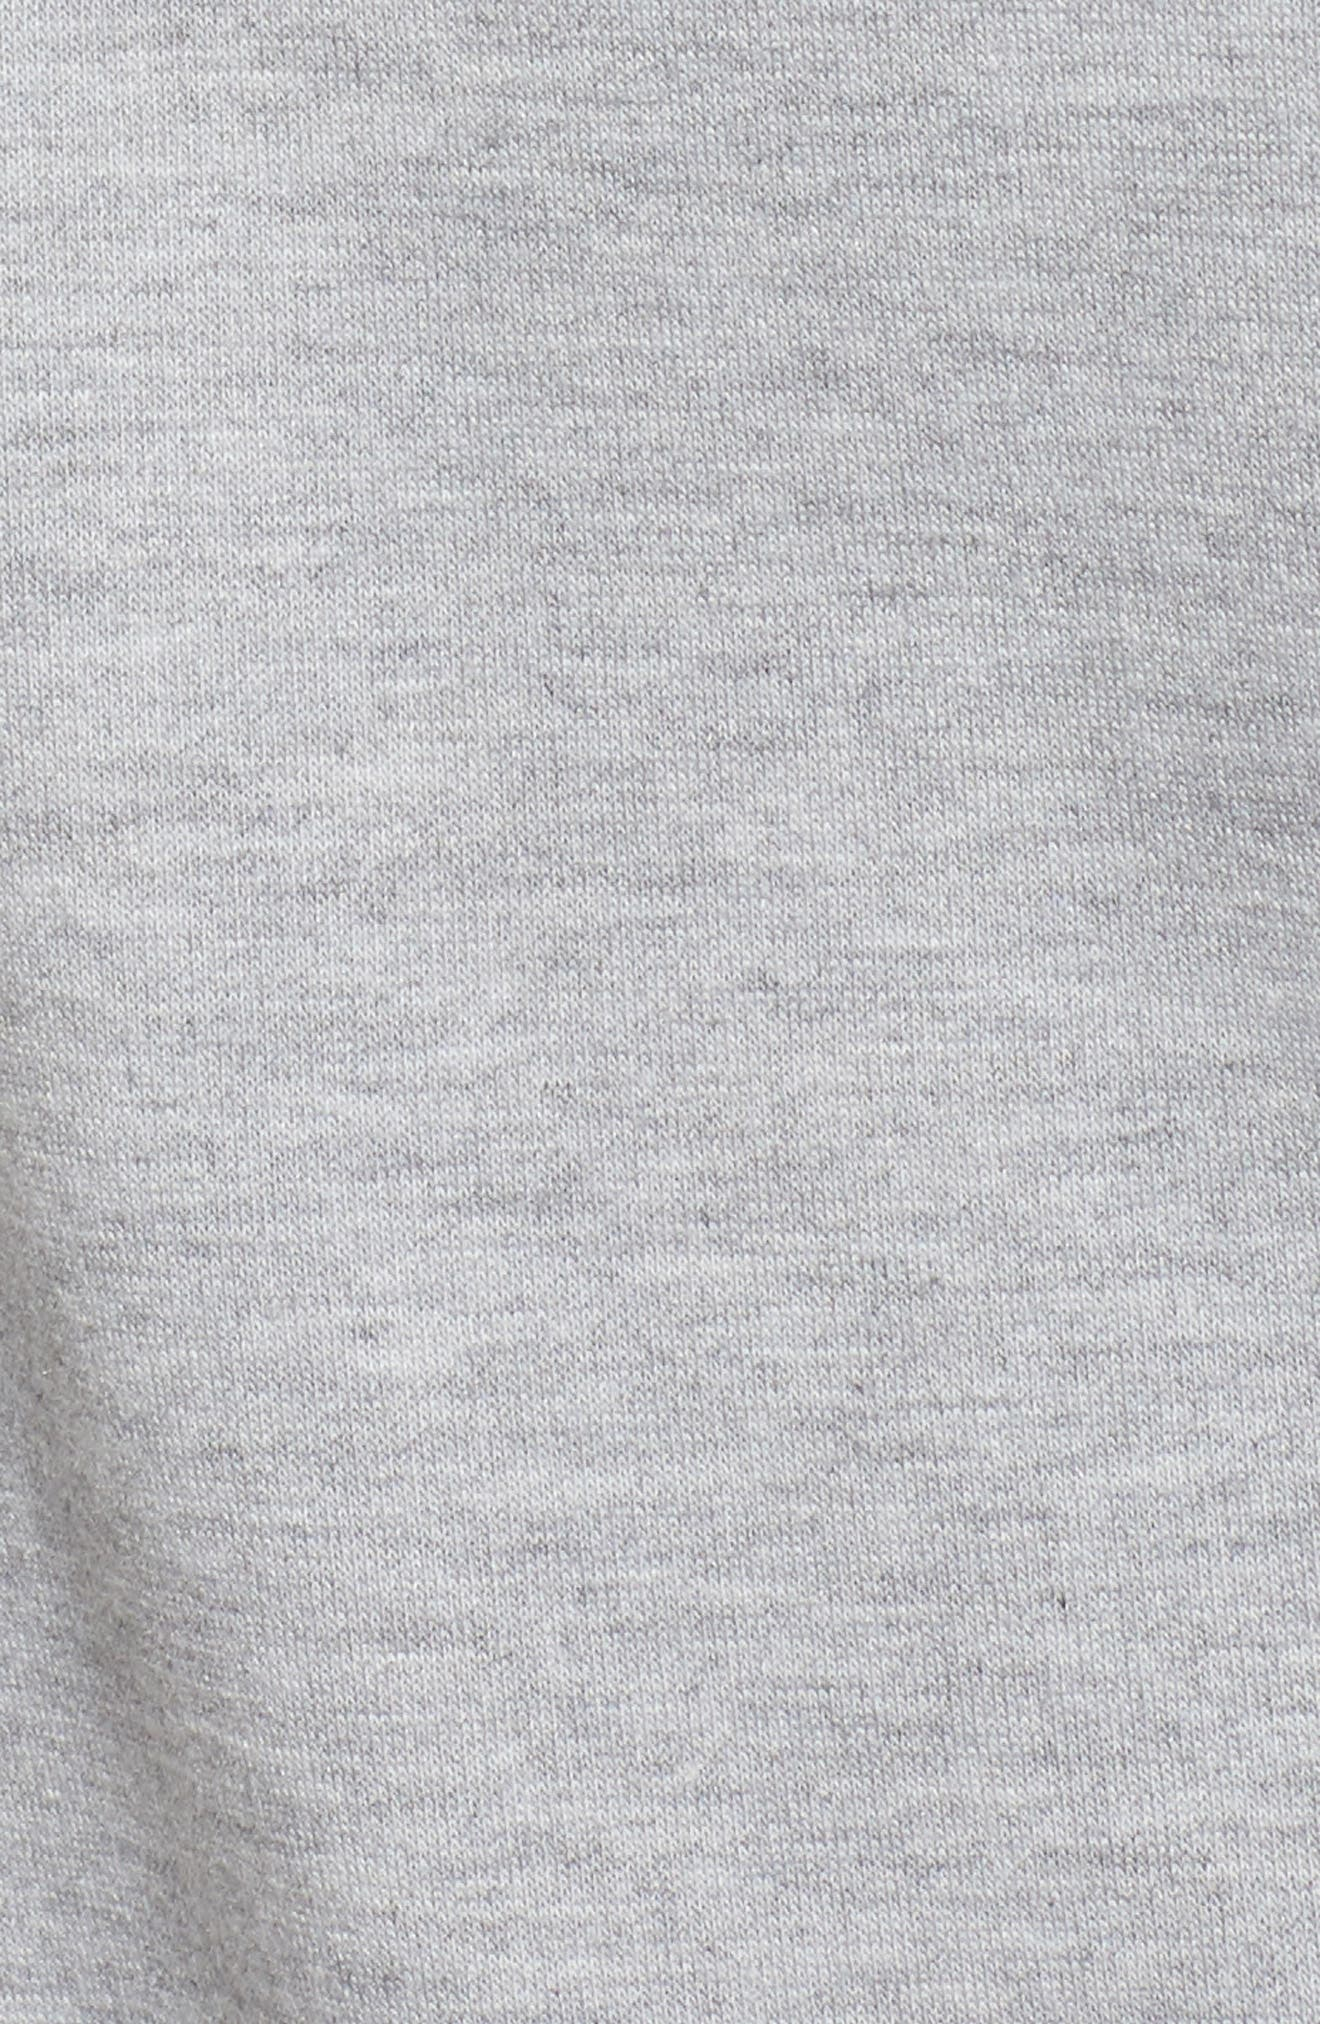 Off-Duty Tired as a Mother Sweatshirt,                             Alternate thumbnail 5, color,                             Grey Heather